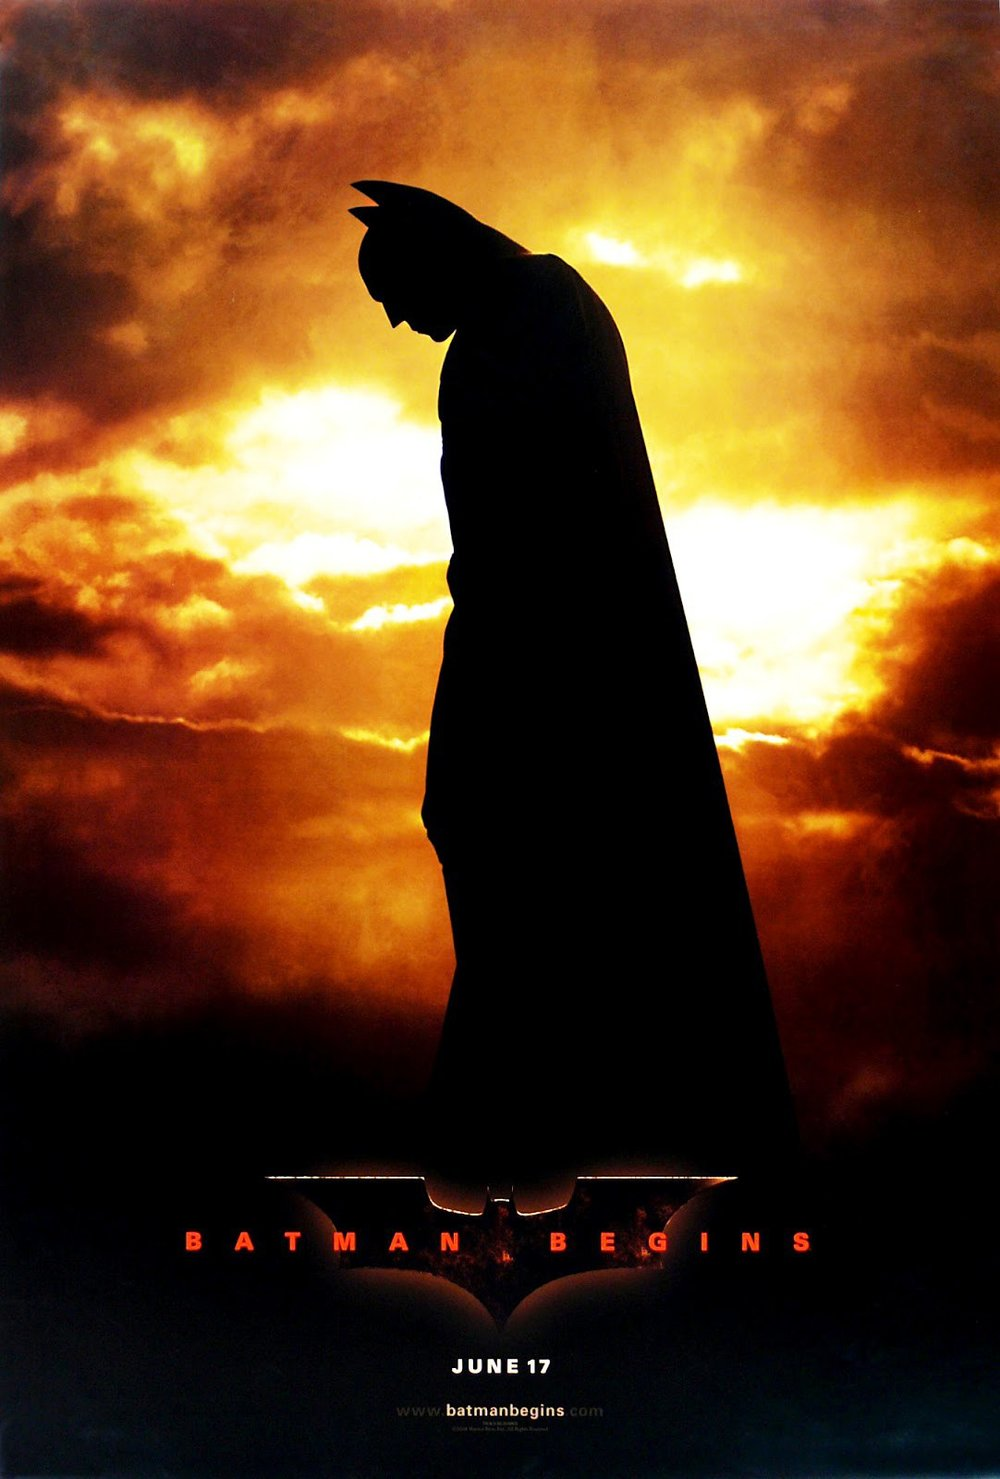 batman-begins-movie-poster1.jpg